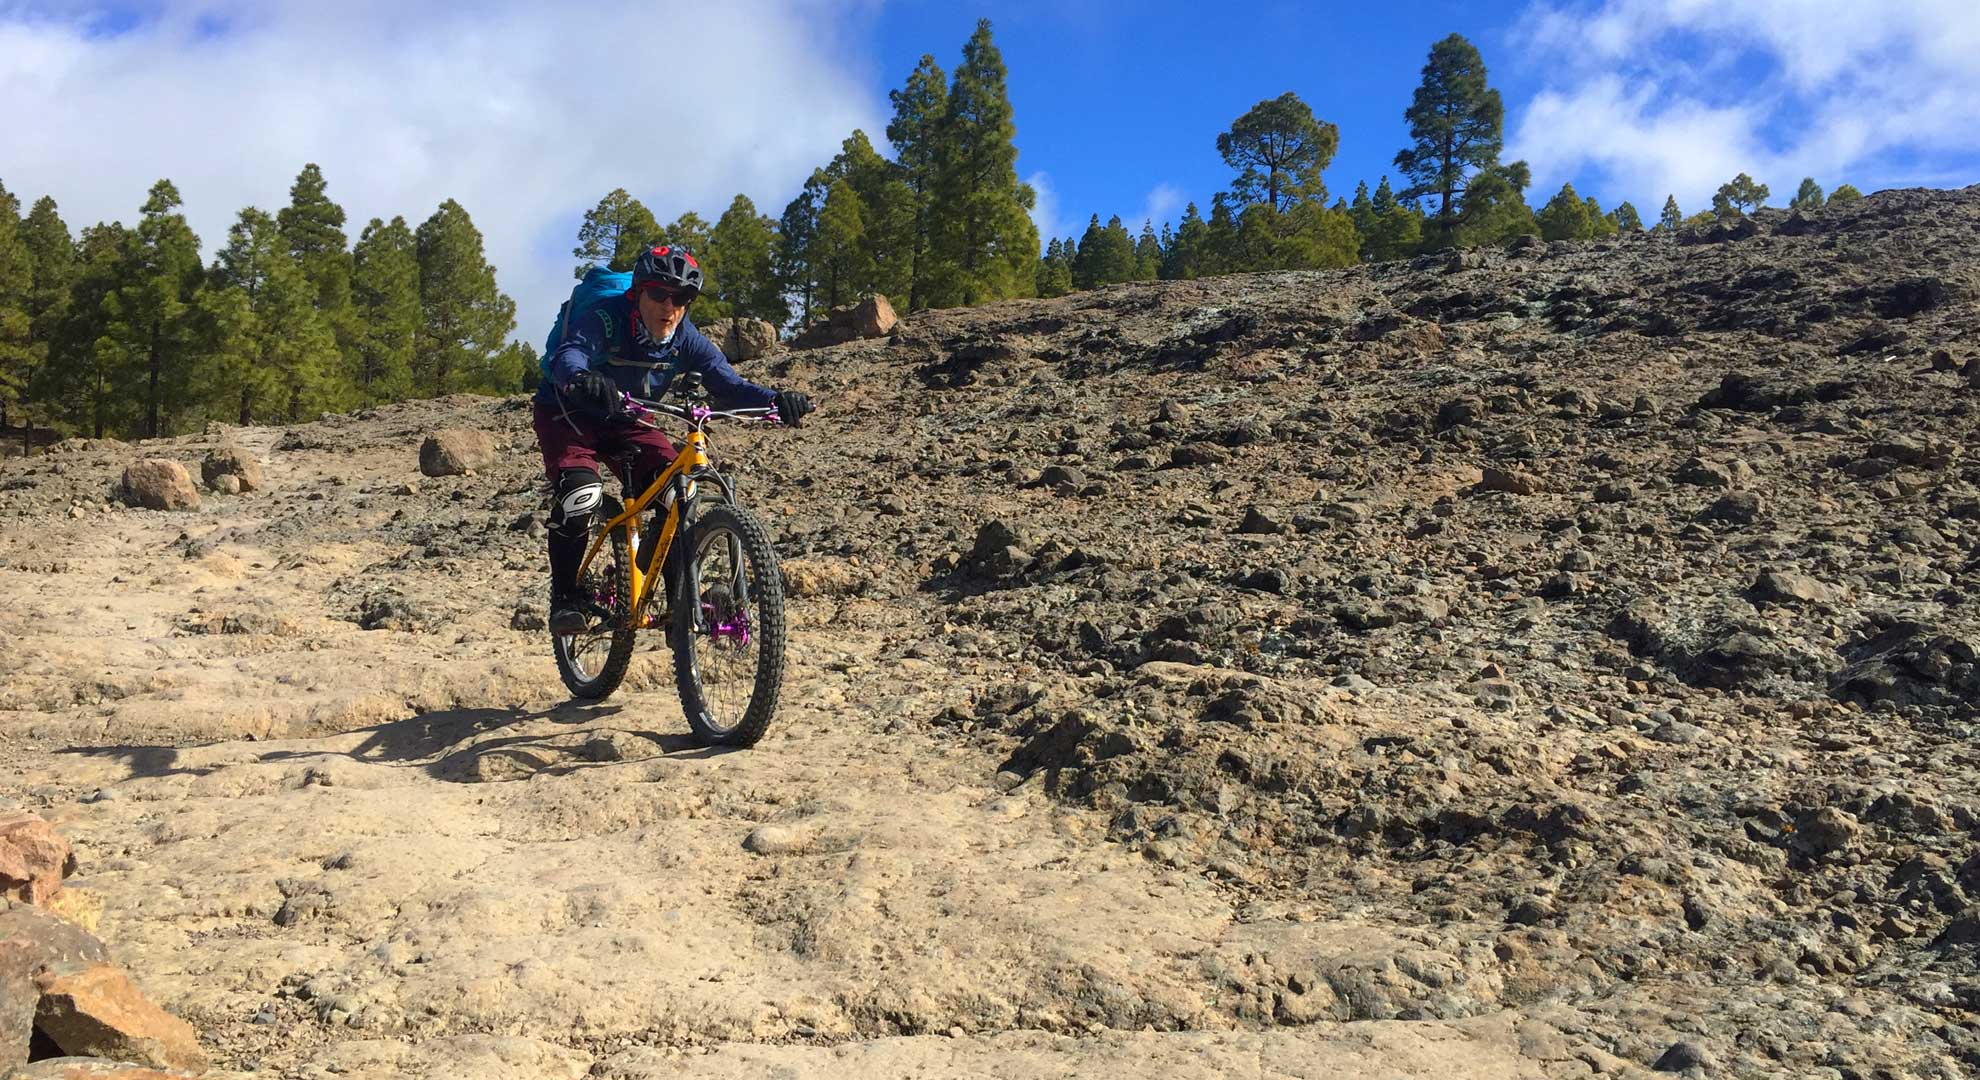 Camino de La Plata - Gran Canaria Mountain bike tour